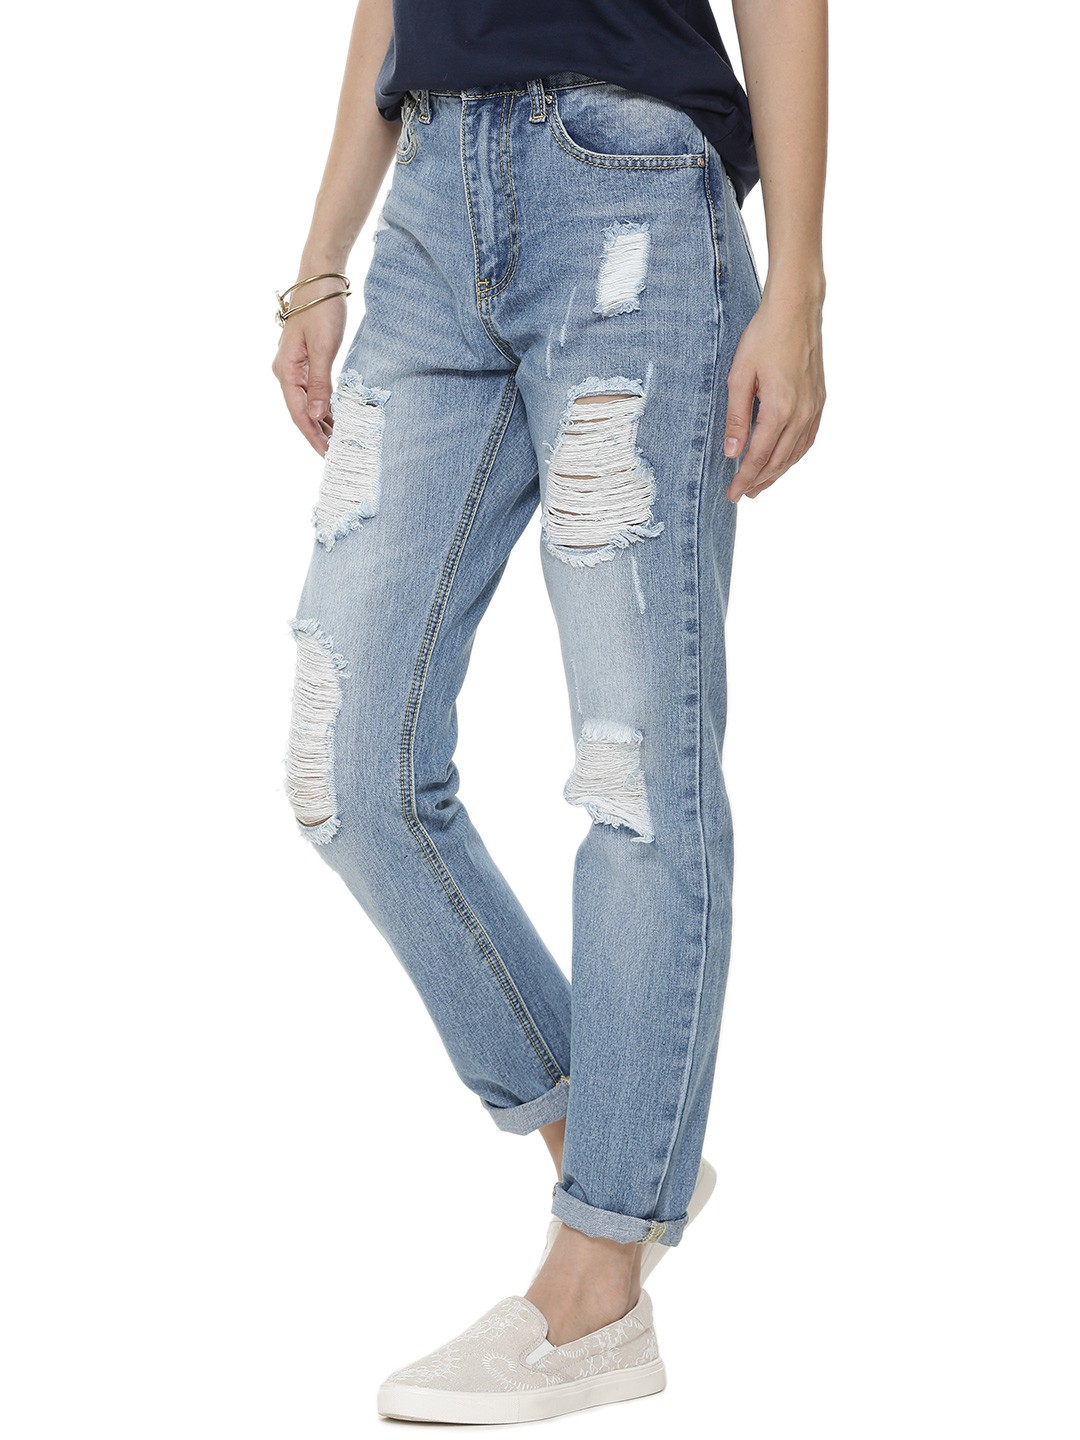 Buy Jeans Online For Women - Xtellar Jeans